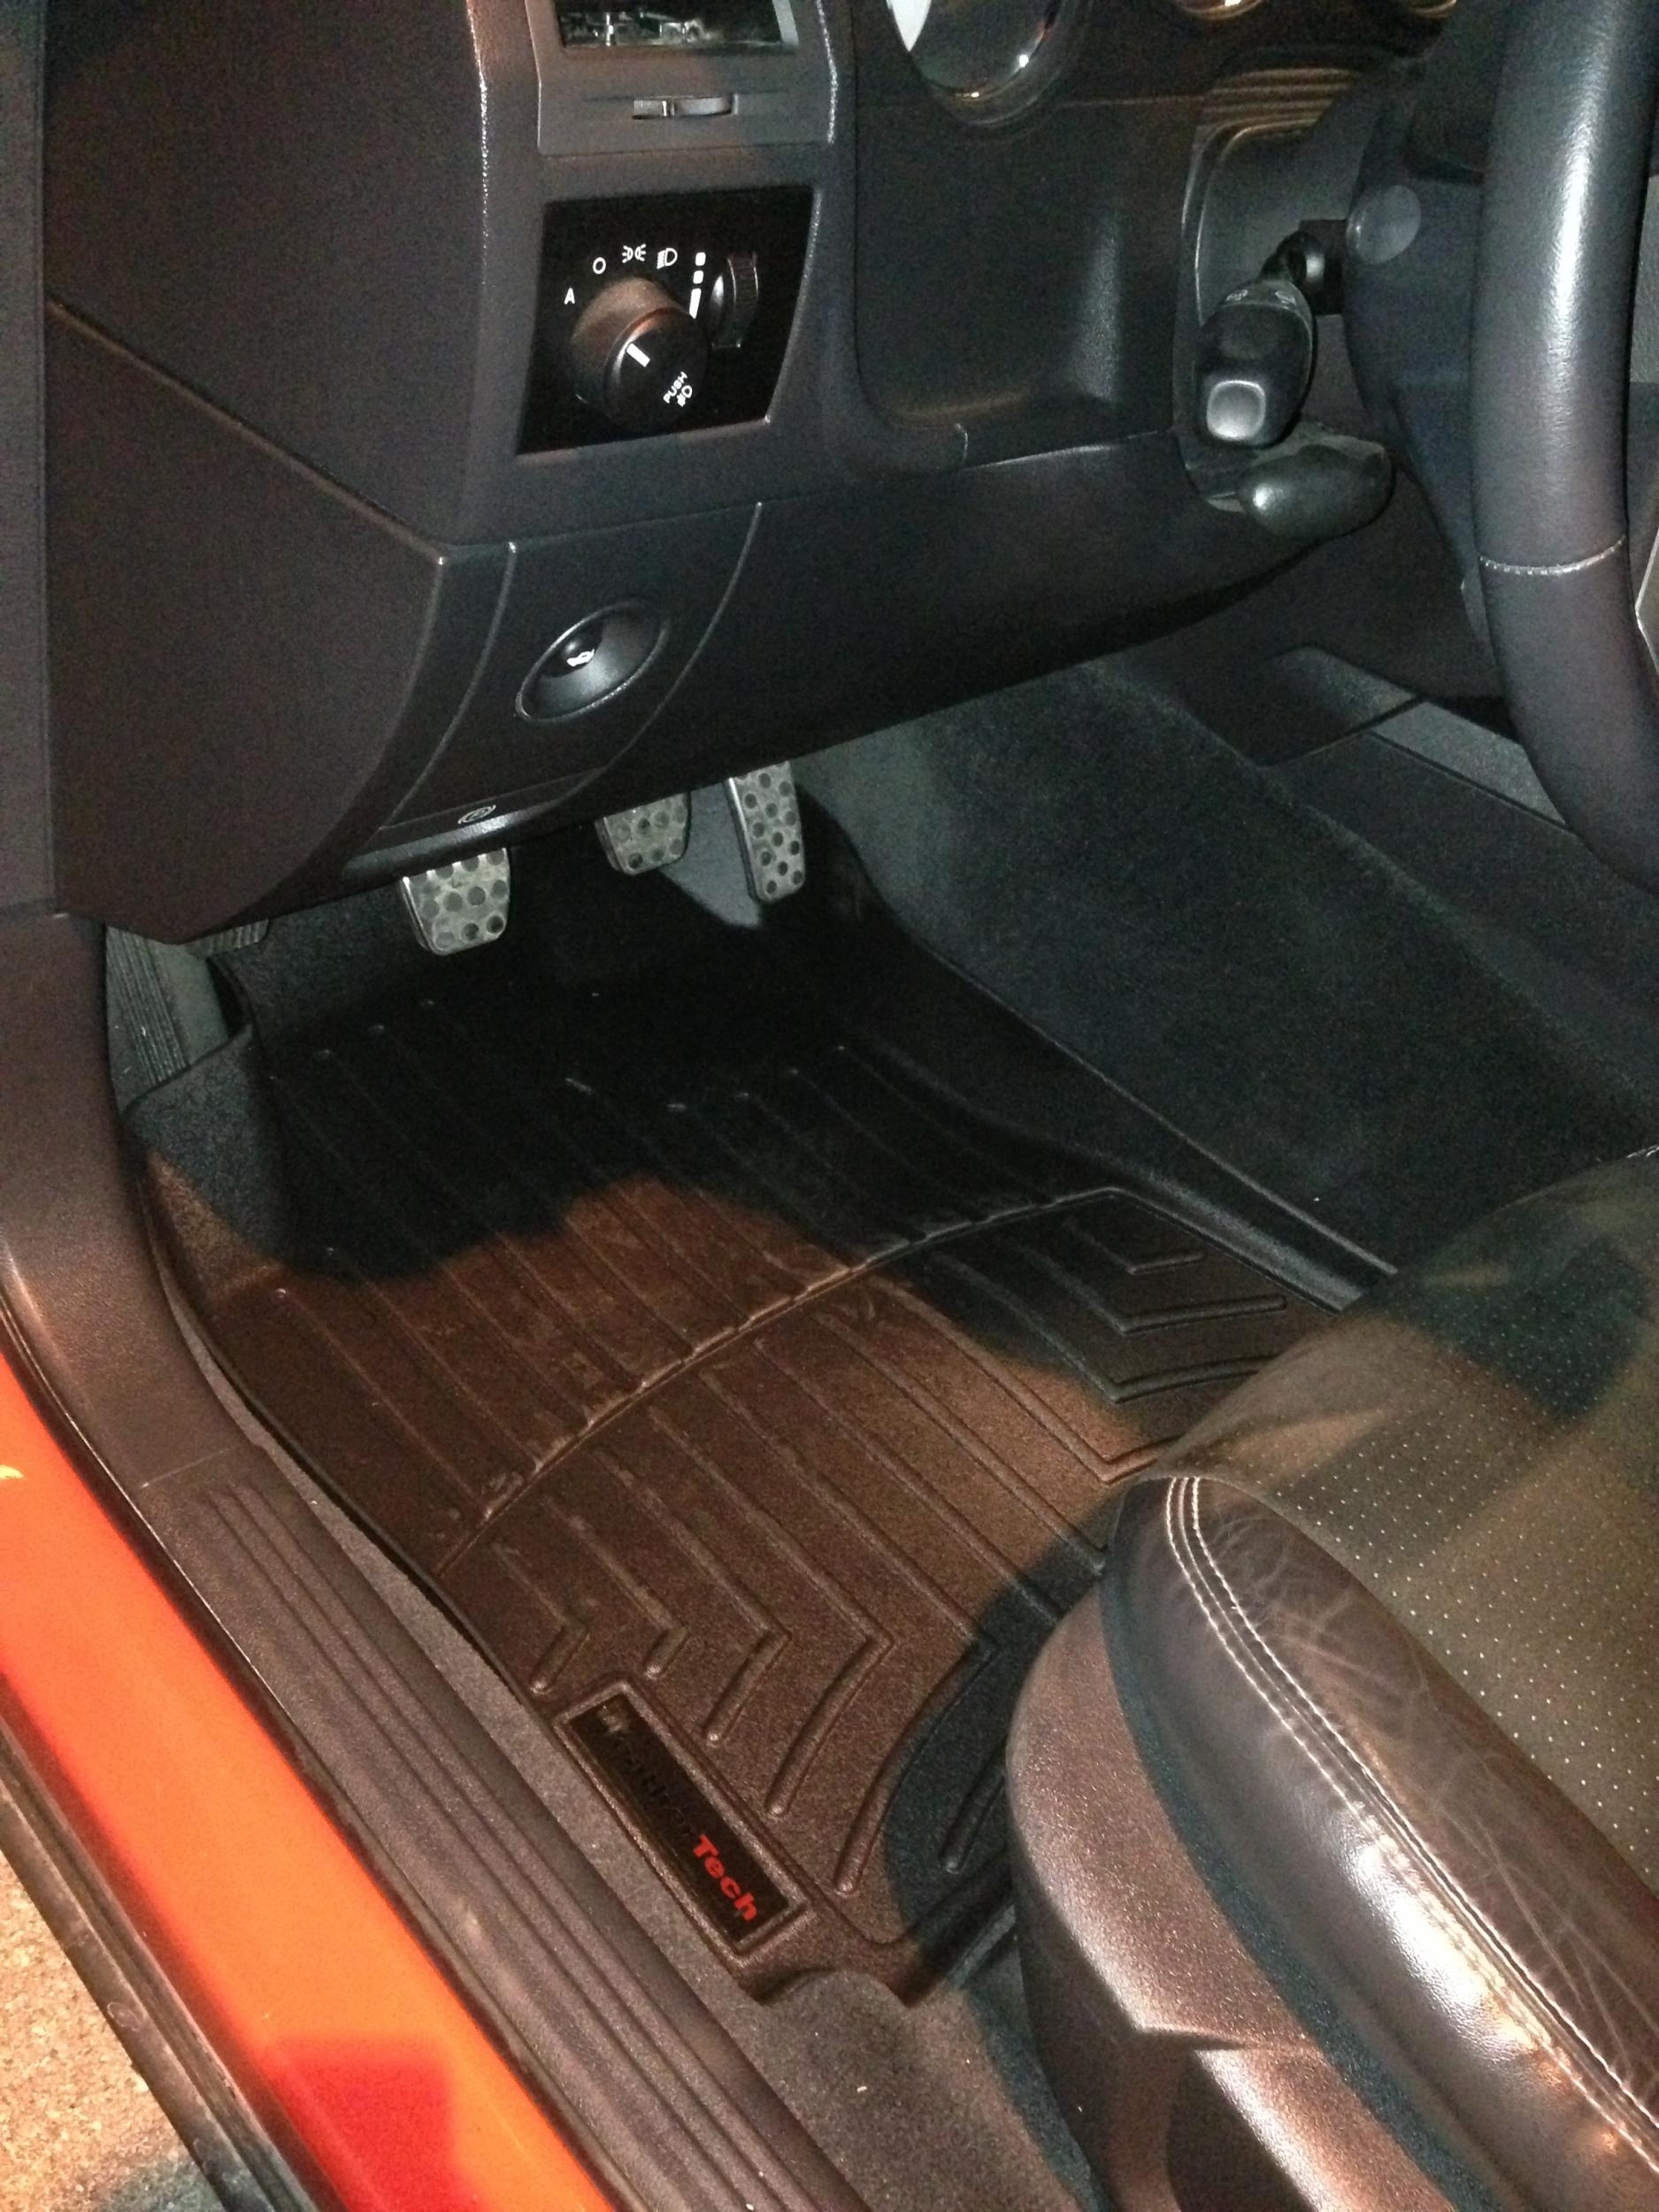 Take A Look About Challenger Floor Mats with Terrific Pictures Cars Review